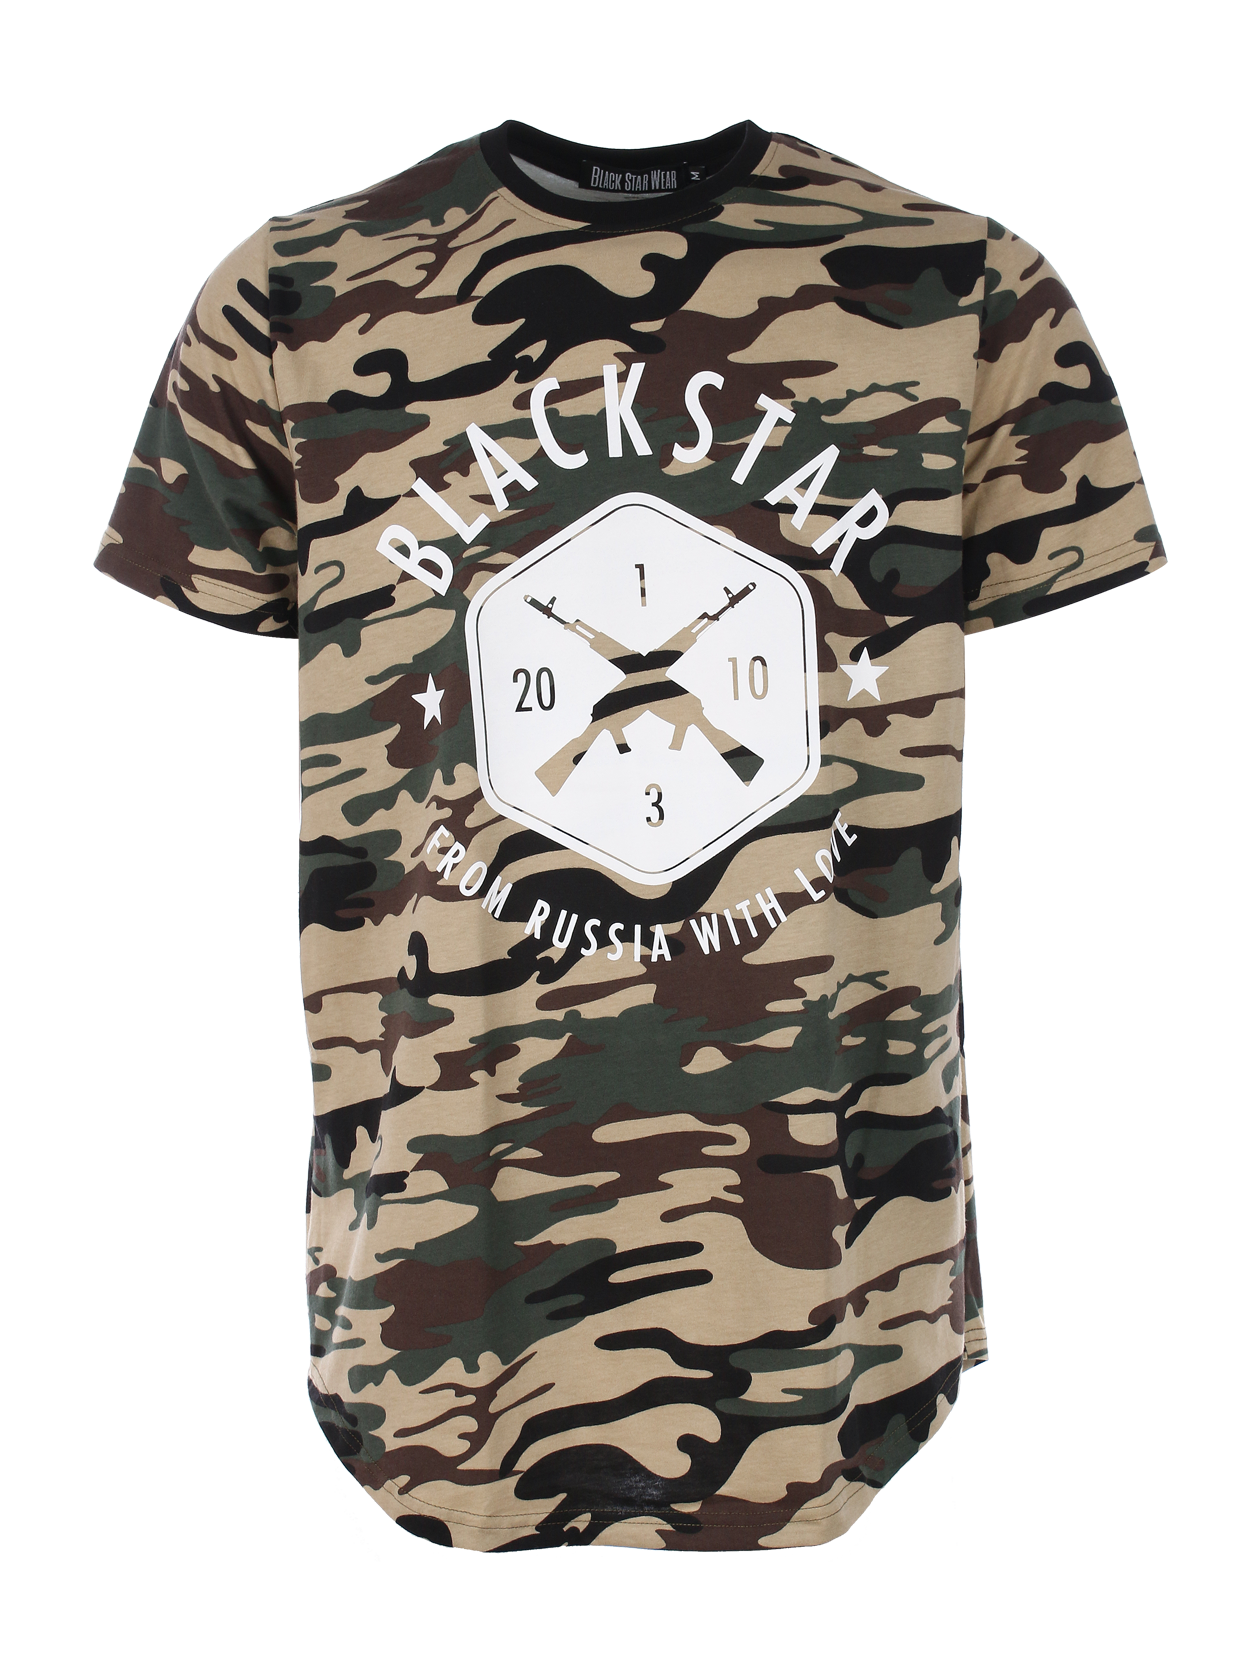 Mens t-shirt BLACK + STAR CAMOMens t-shirt by Black Star Wear. Round cut, 100% cotton, o-neck. Big print with crossed rifles and Blackstar - from Russia with love lettering. These t-shirt is made of soft-touch natural cotton and feels like its been your favourite for years. Avaliable in white and khaki camouflage.<br><br>size: M<br>color: Khaki<br>gender: male